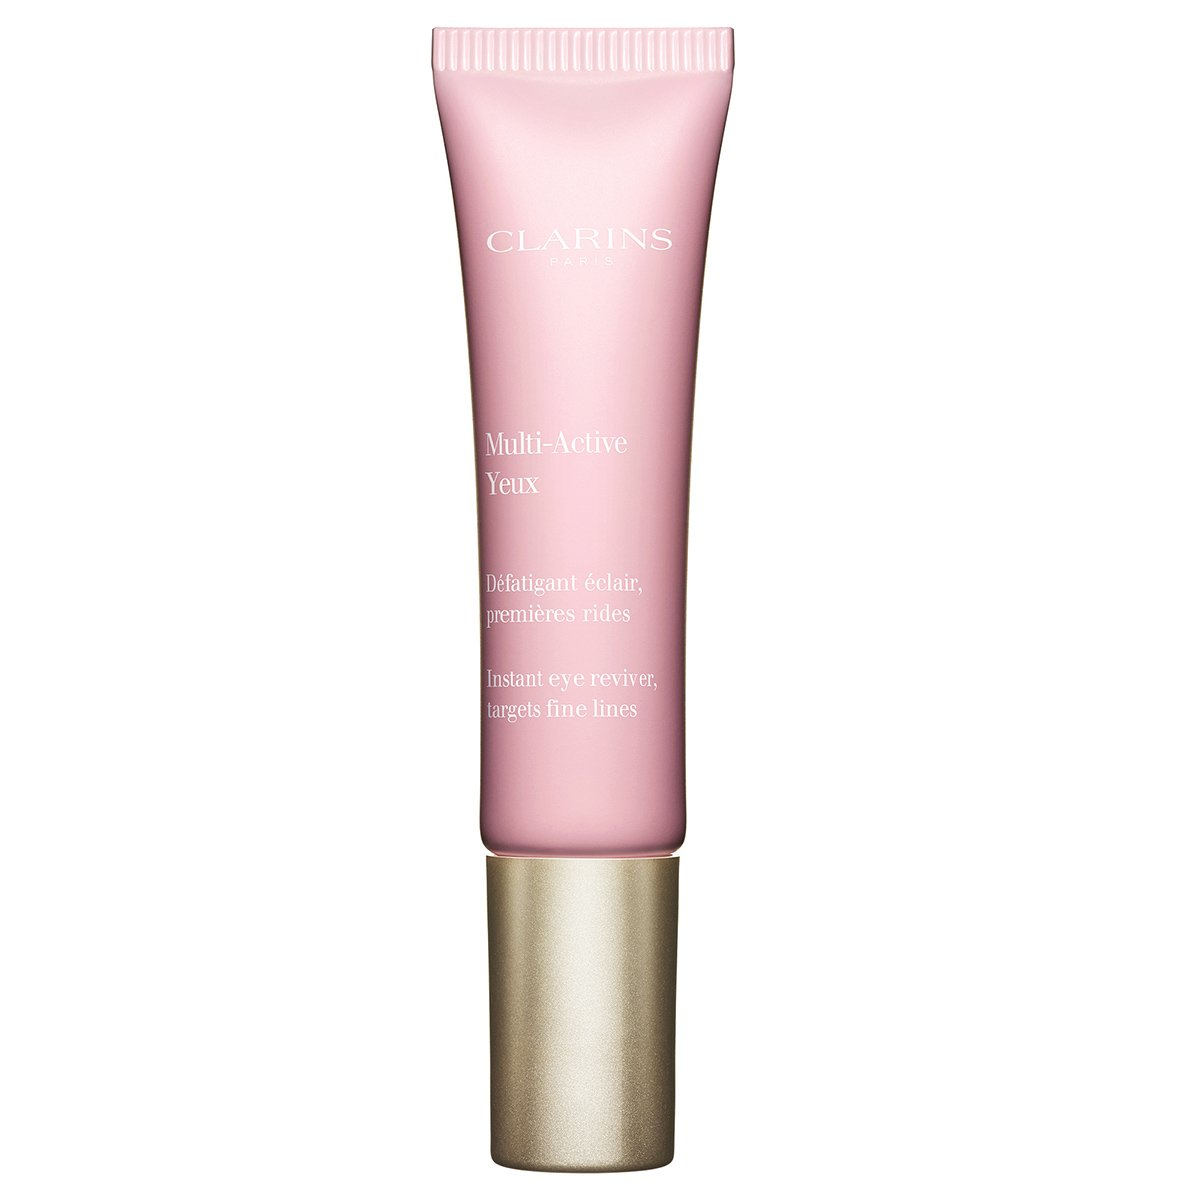 Clarins - Multi-Active - Yeux 15 ml